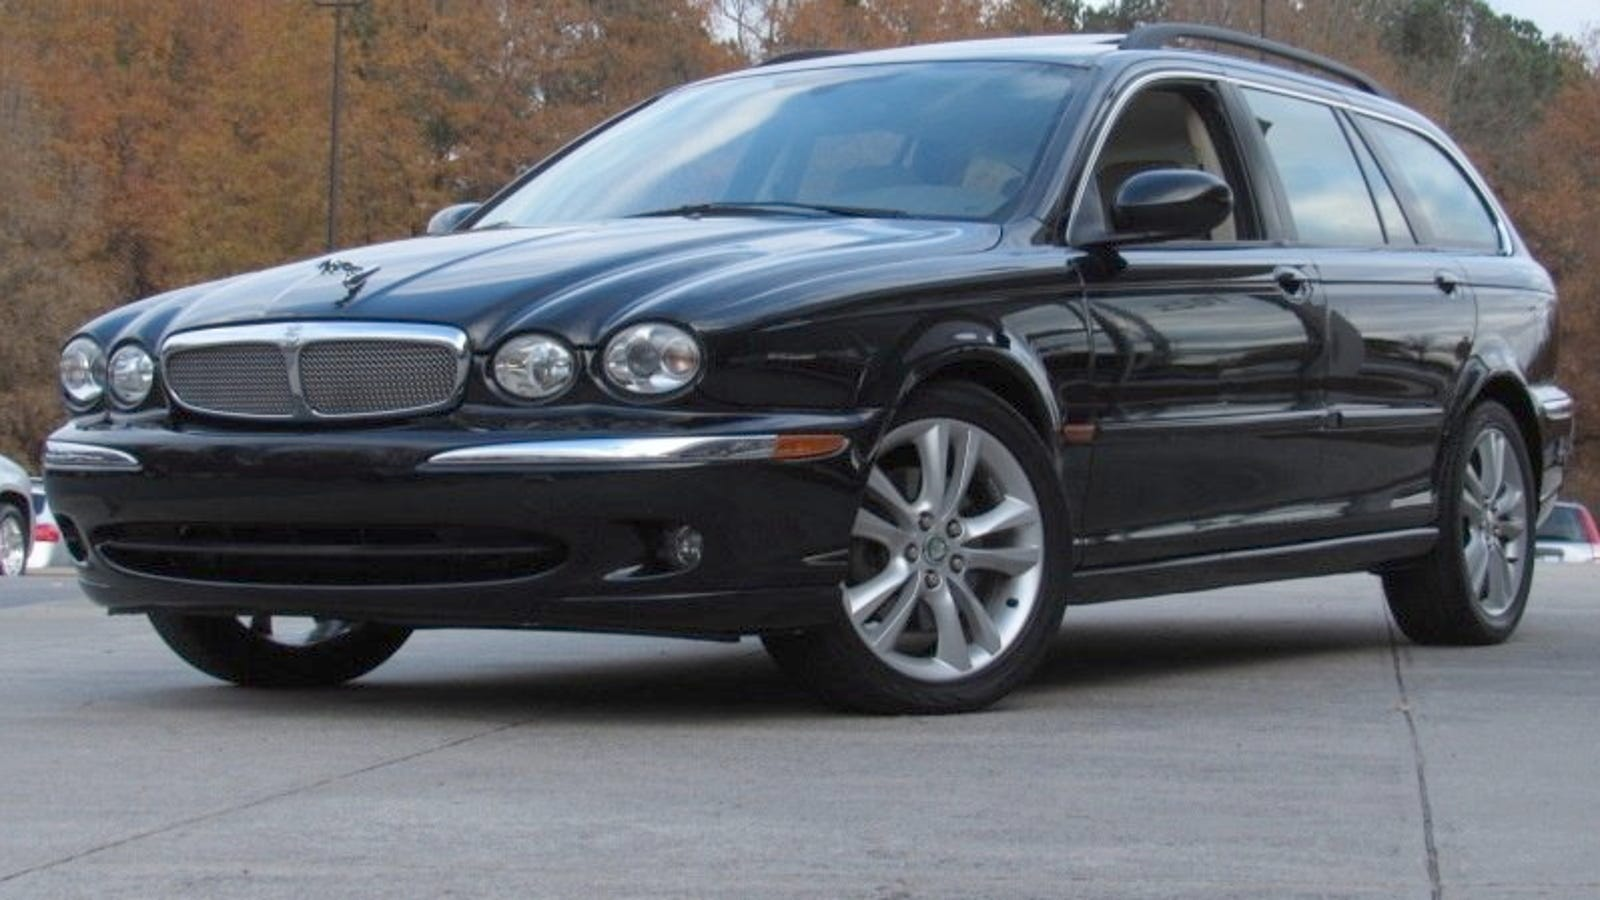 At 12 995 Will This 2007 Jaguar X Type Wagon Let The Cat Out Of Bag